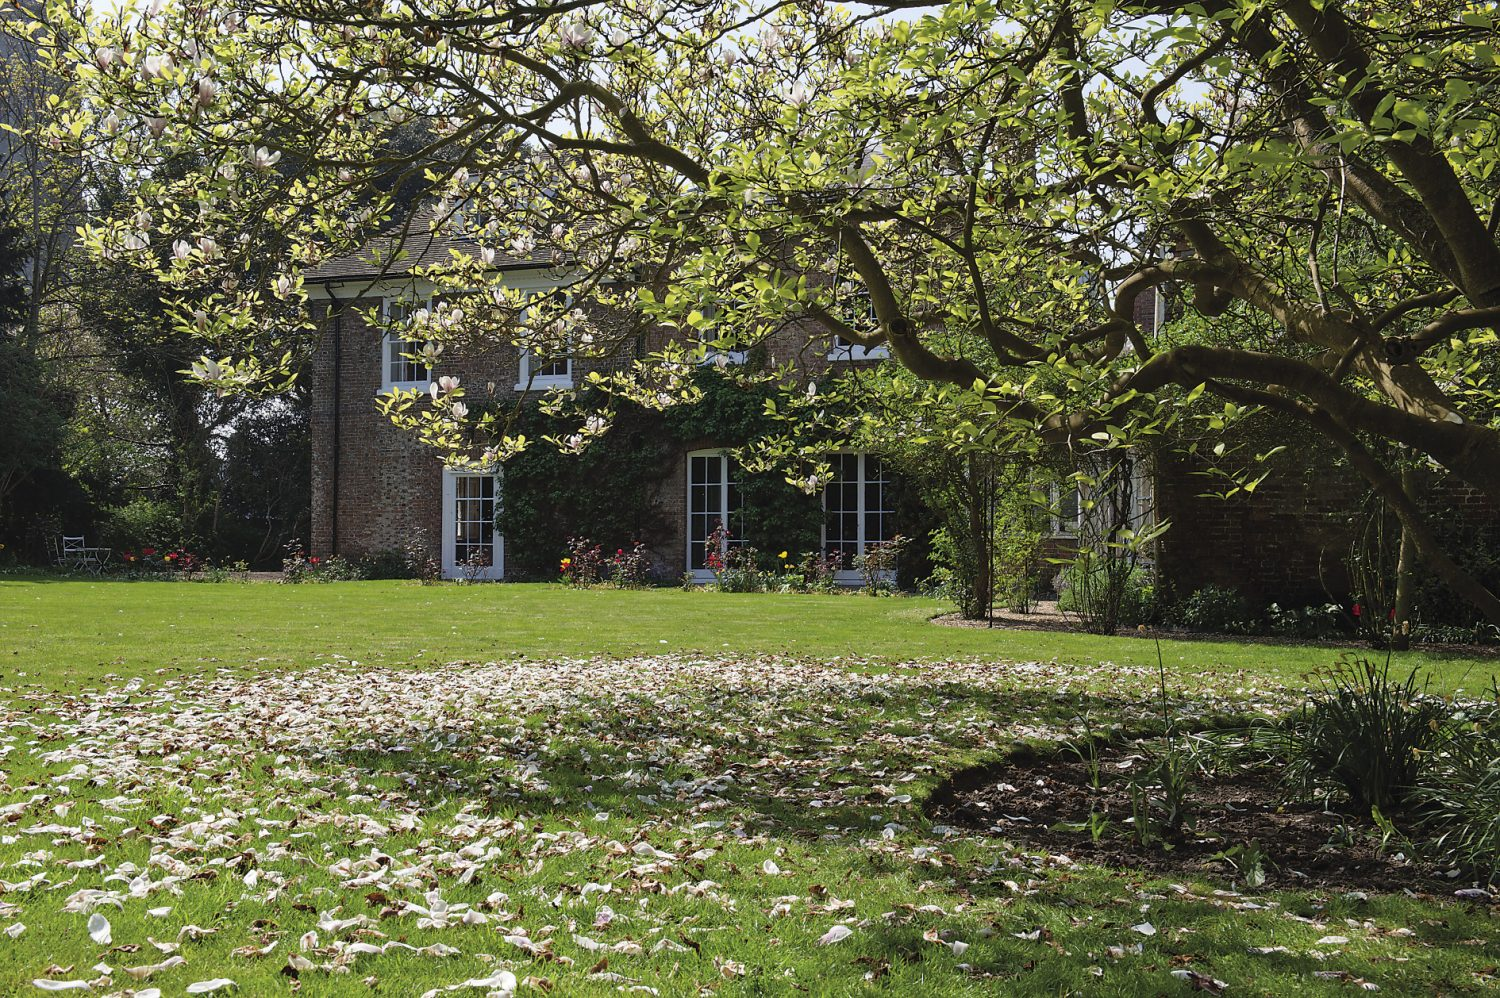 A beautiful magnolia tree stands proudly in the centre of the garden